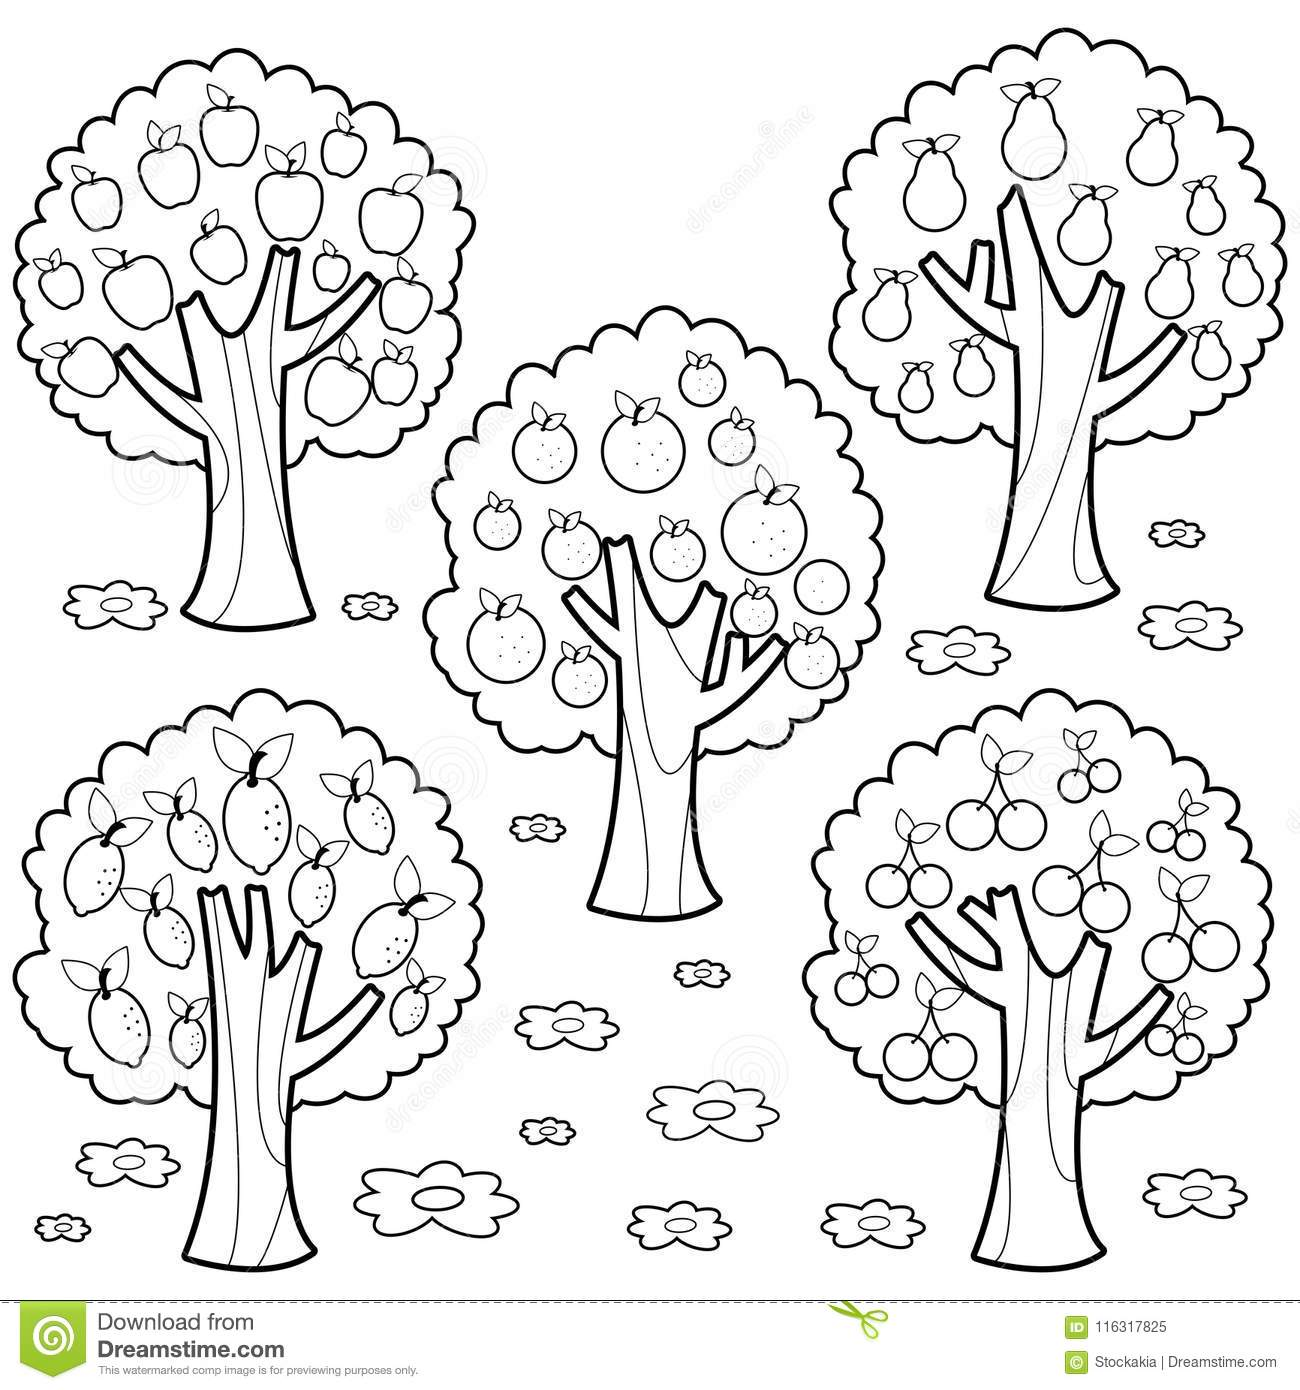 77 Coloring Book Tree Images Picture HD